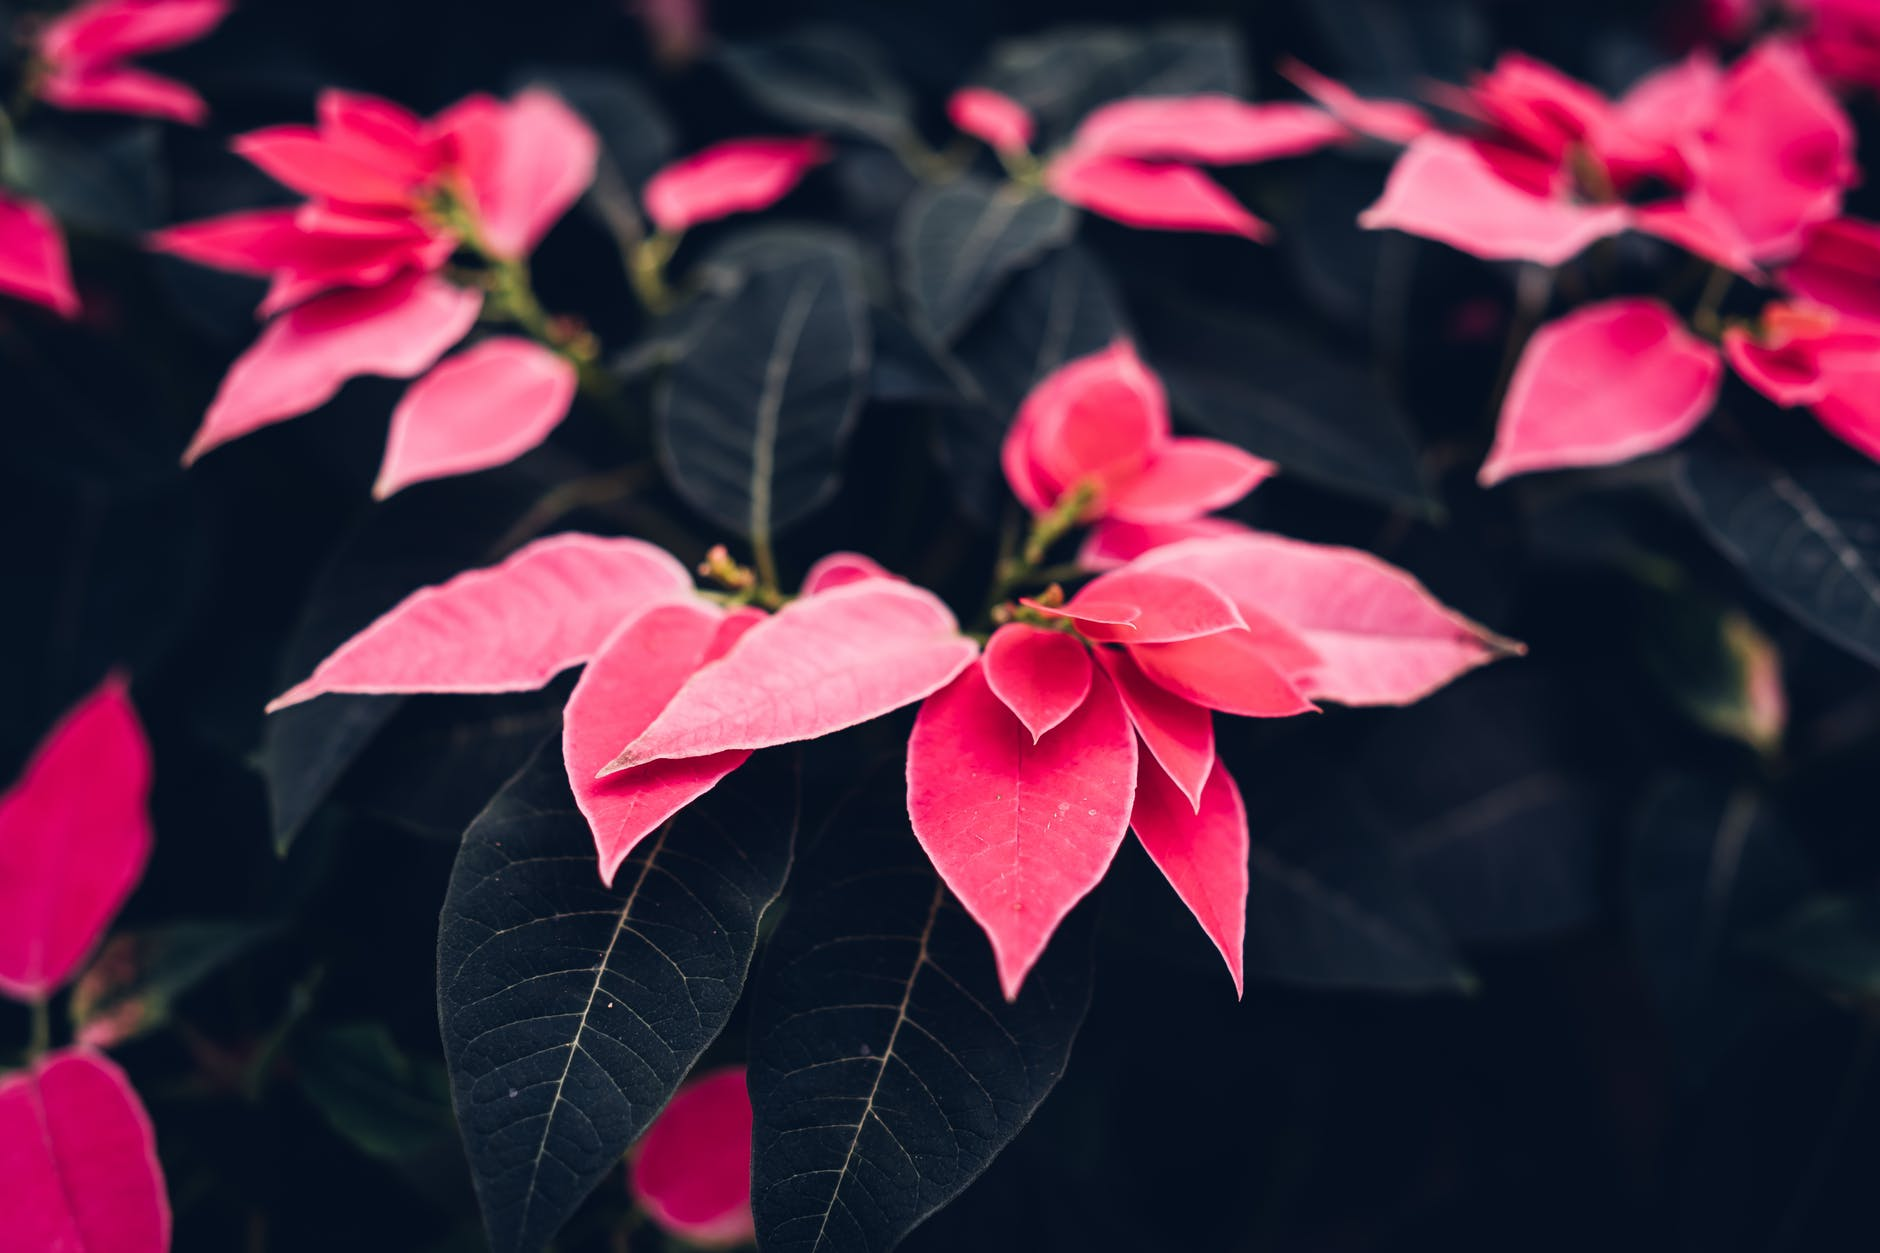 Amazon rainforest plant, Poinsettia